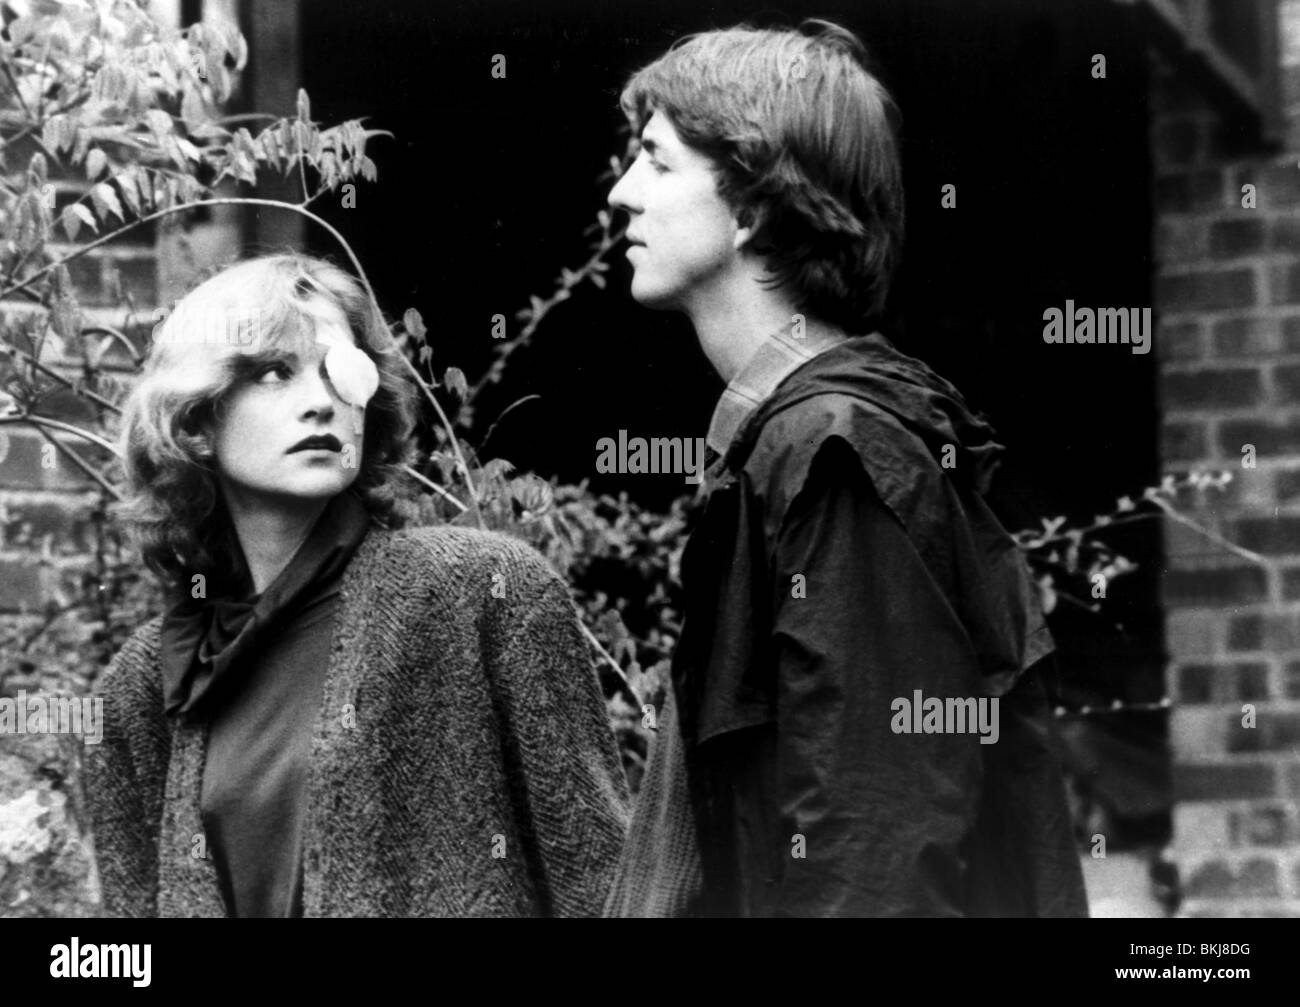 CACTUS (1986) ISABELLE HUPPERT, ROBERT MENZIES CACS 002P - Stock Image